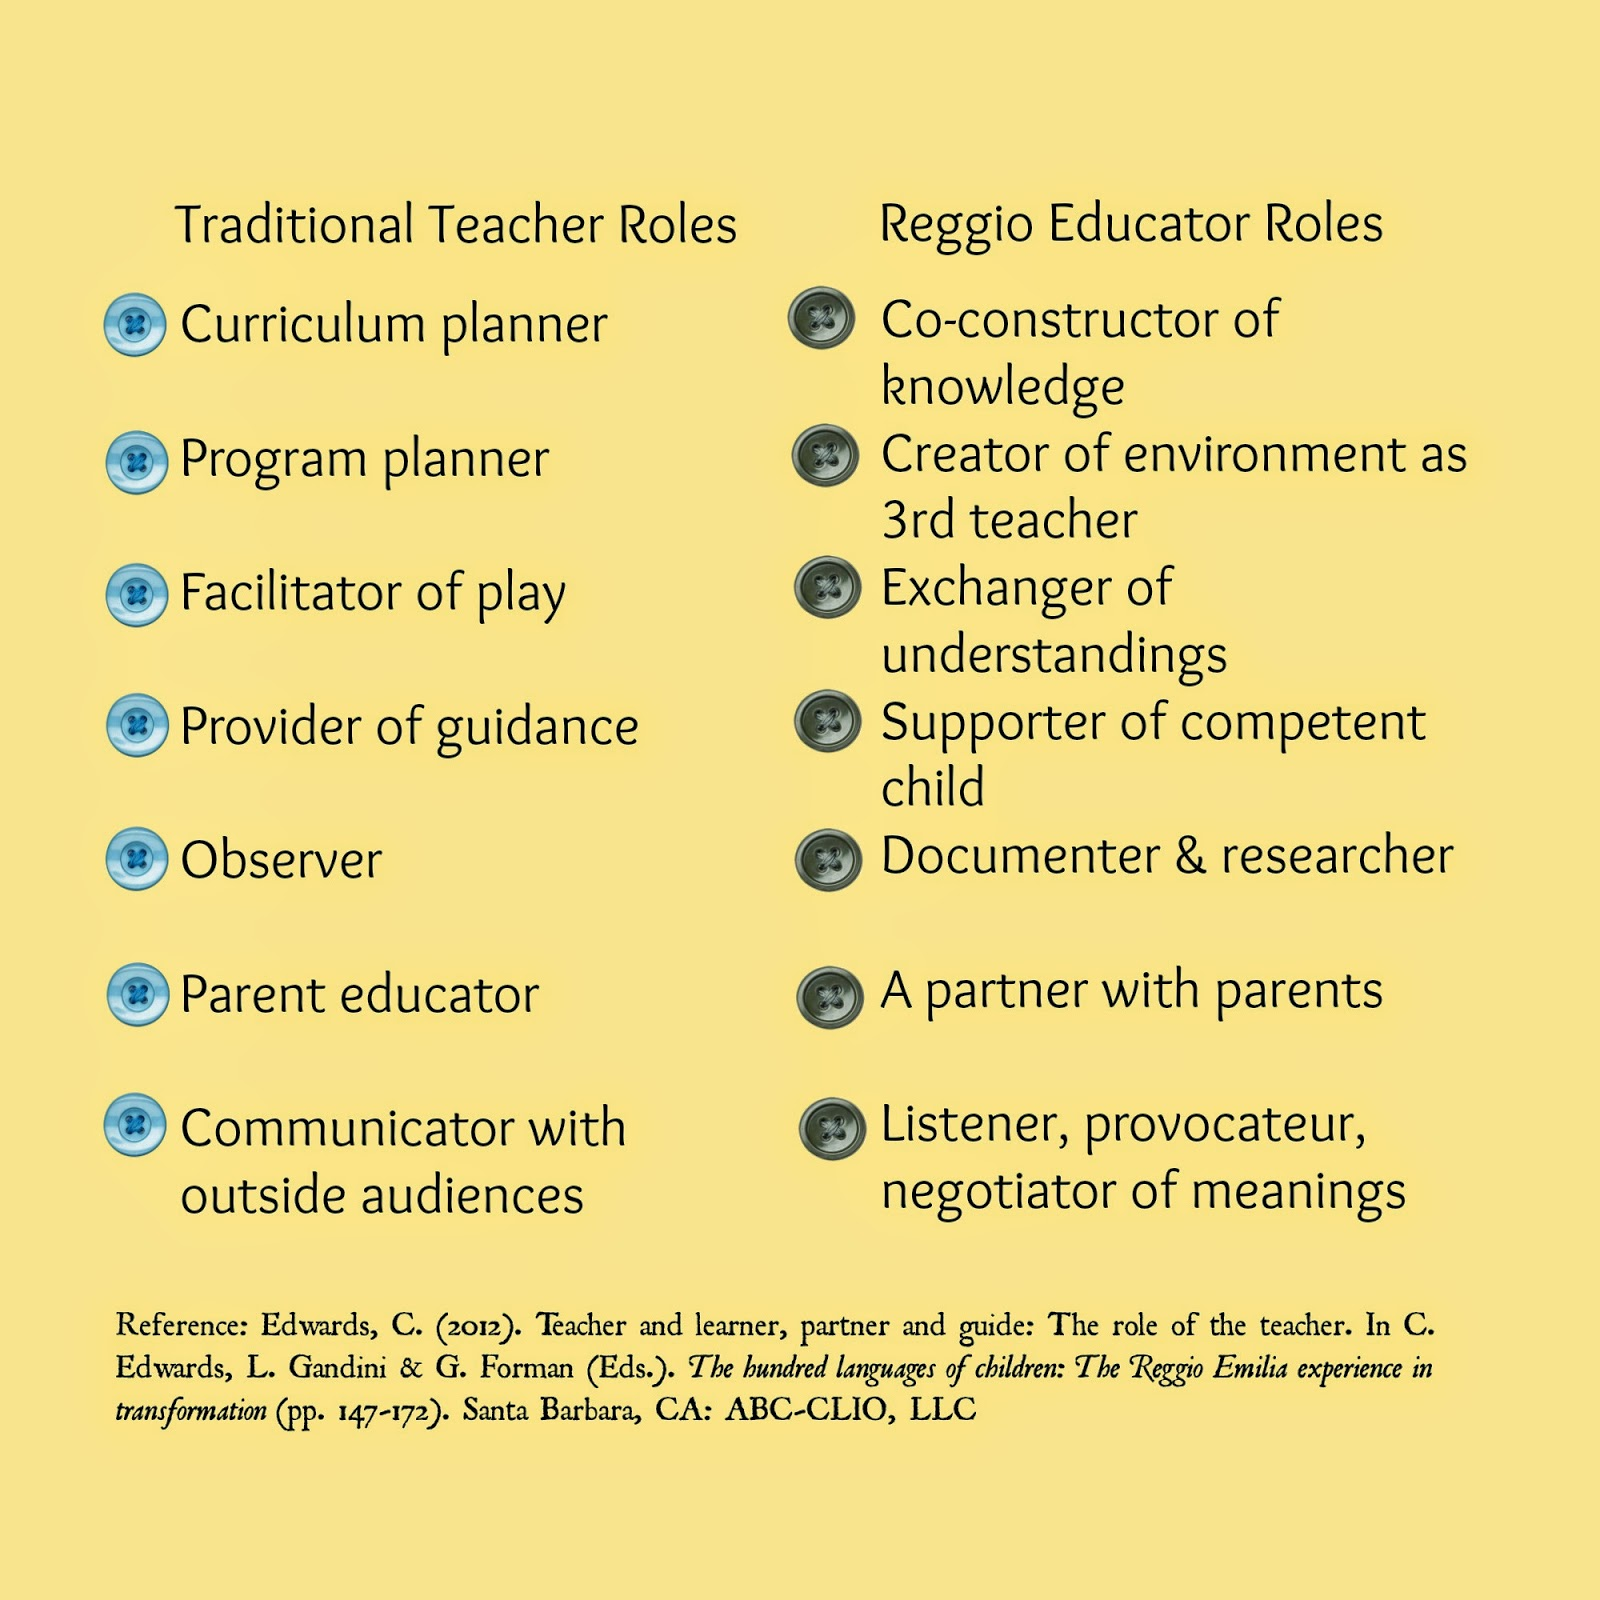 Comparison of traditional versus Reggio educator roles